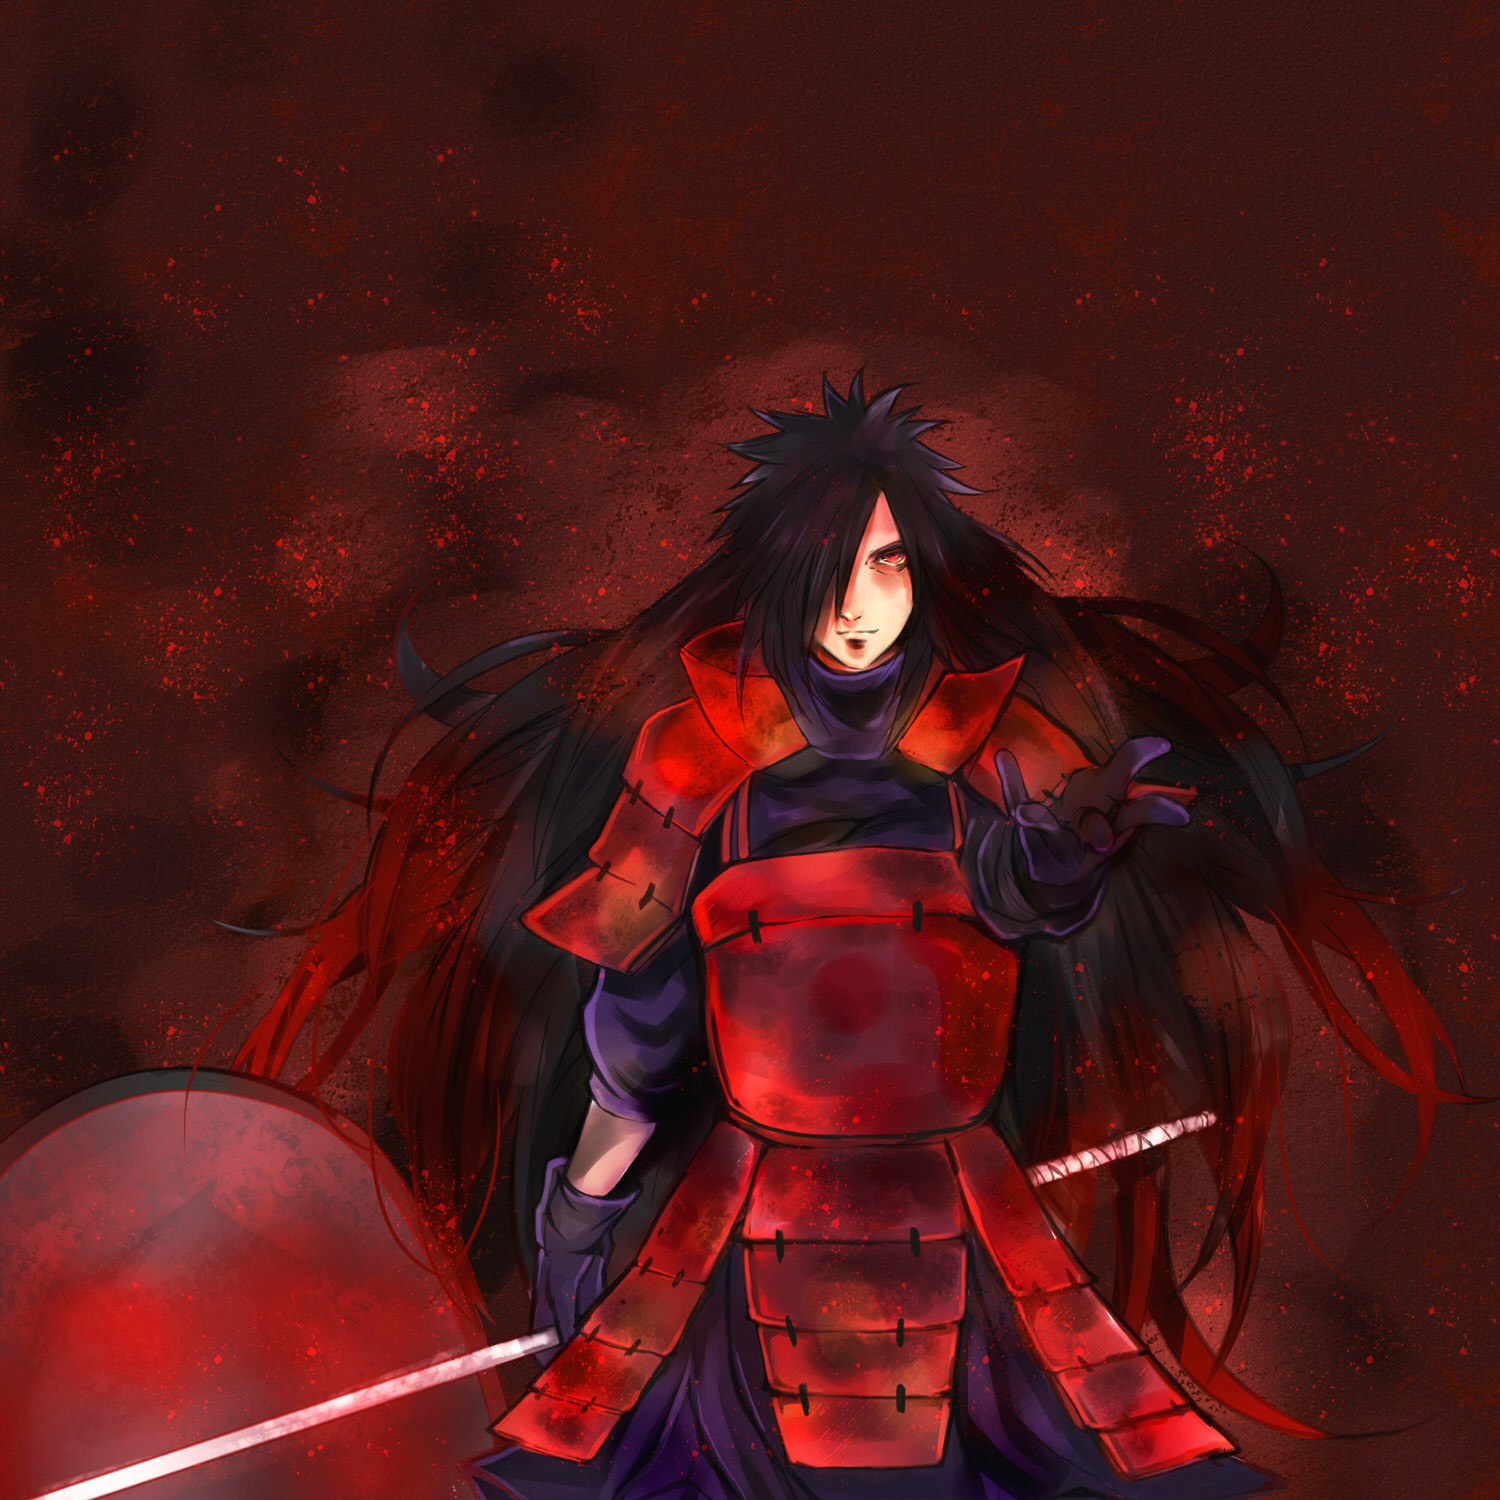 Madara Uchiha 18 Wallpapers Your daily Anime Wallpaper and Fan Art 1500x1500